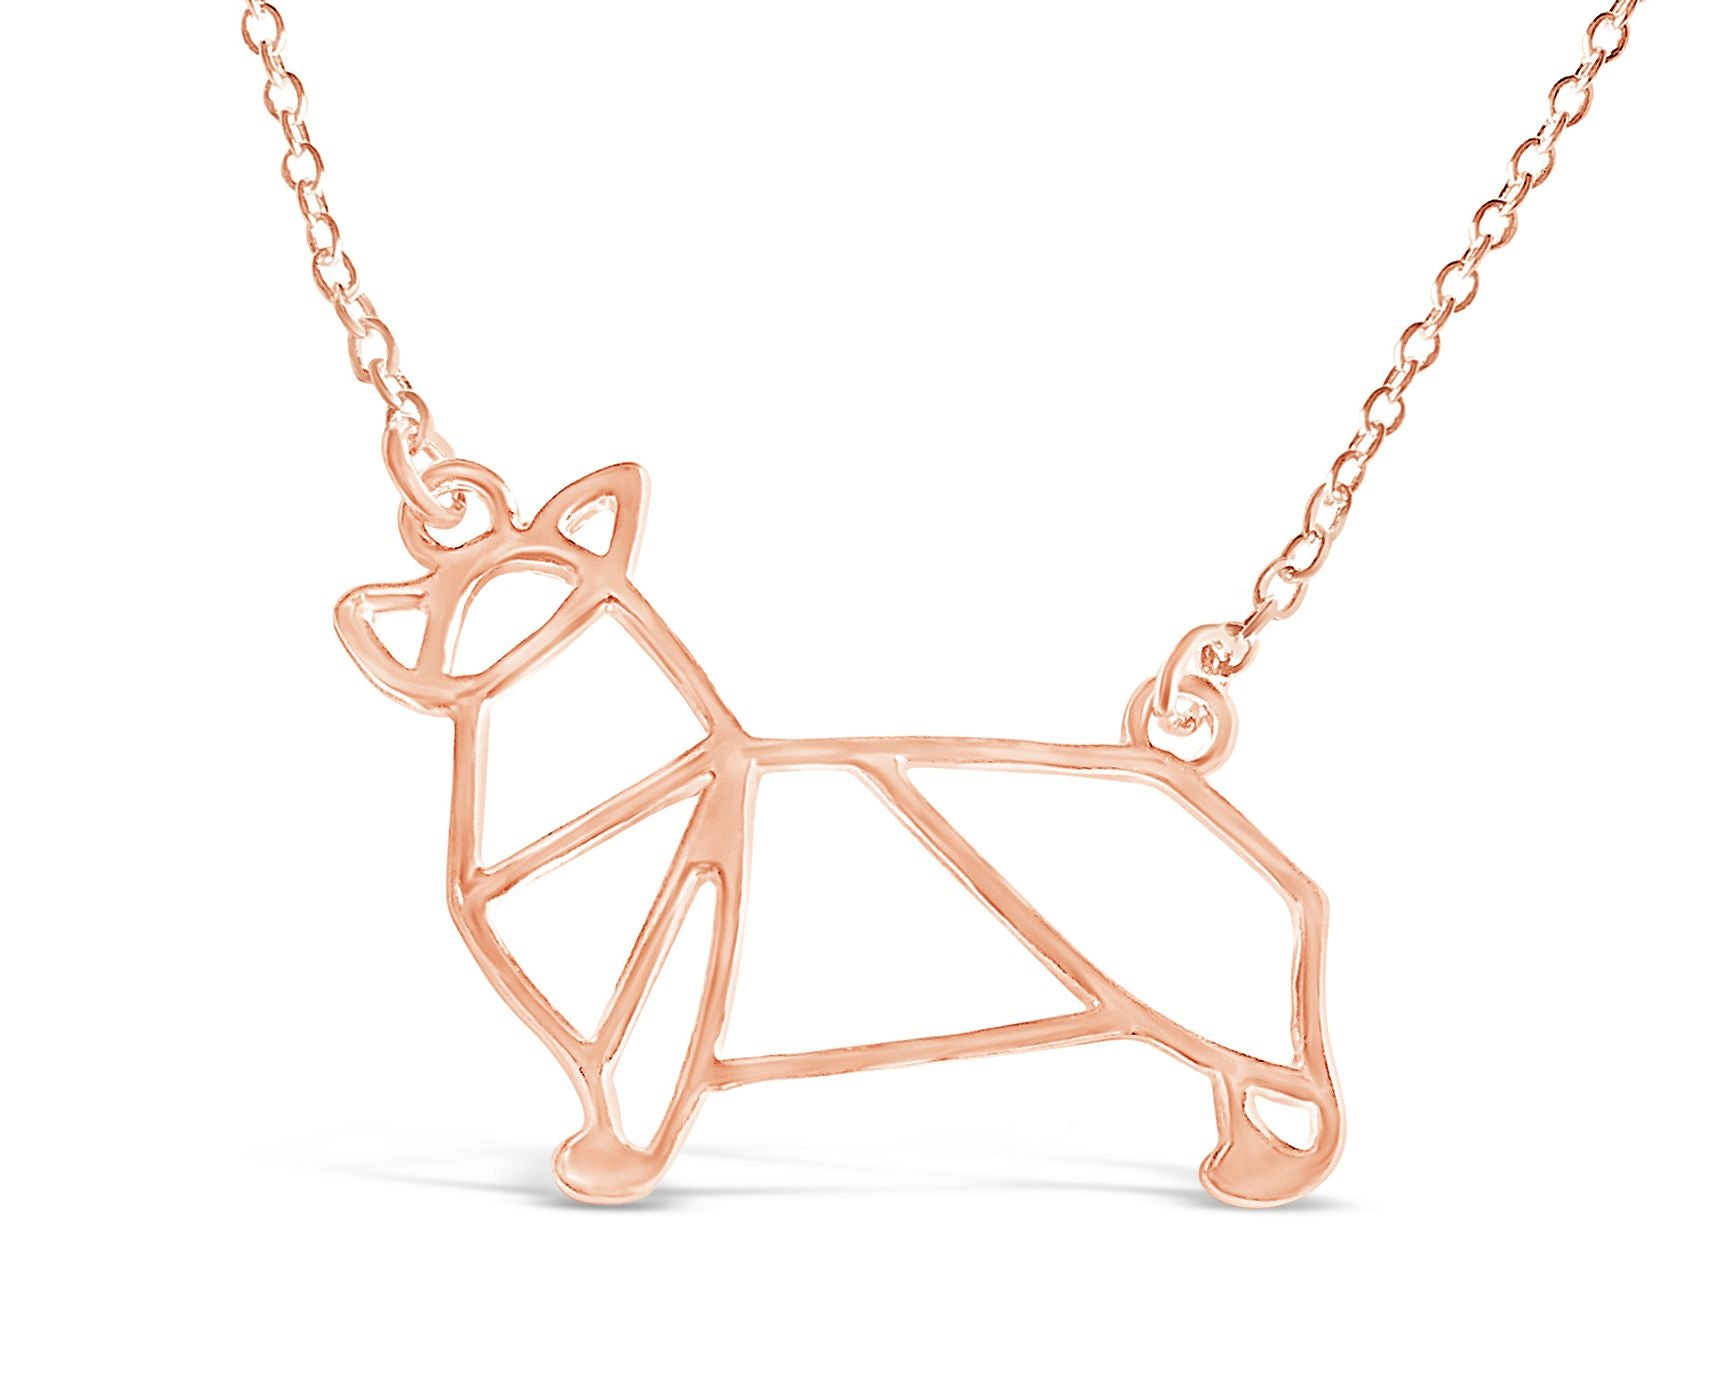 Buy welsh corgi inspired pendant necklace rosa vila minimalist welsh corgi inspired origami pendant necklace rosa vila boutique mozeypictures Image collections